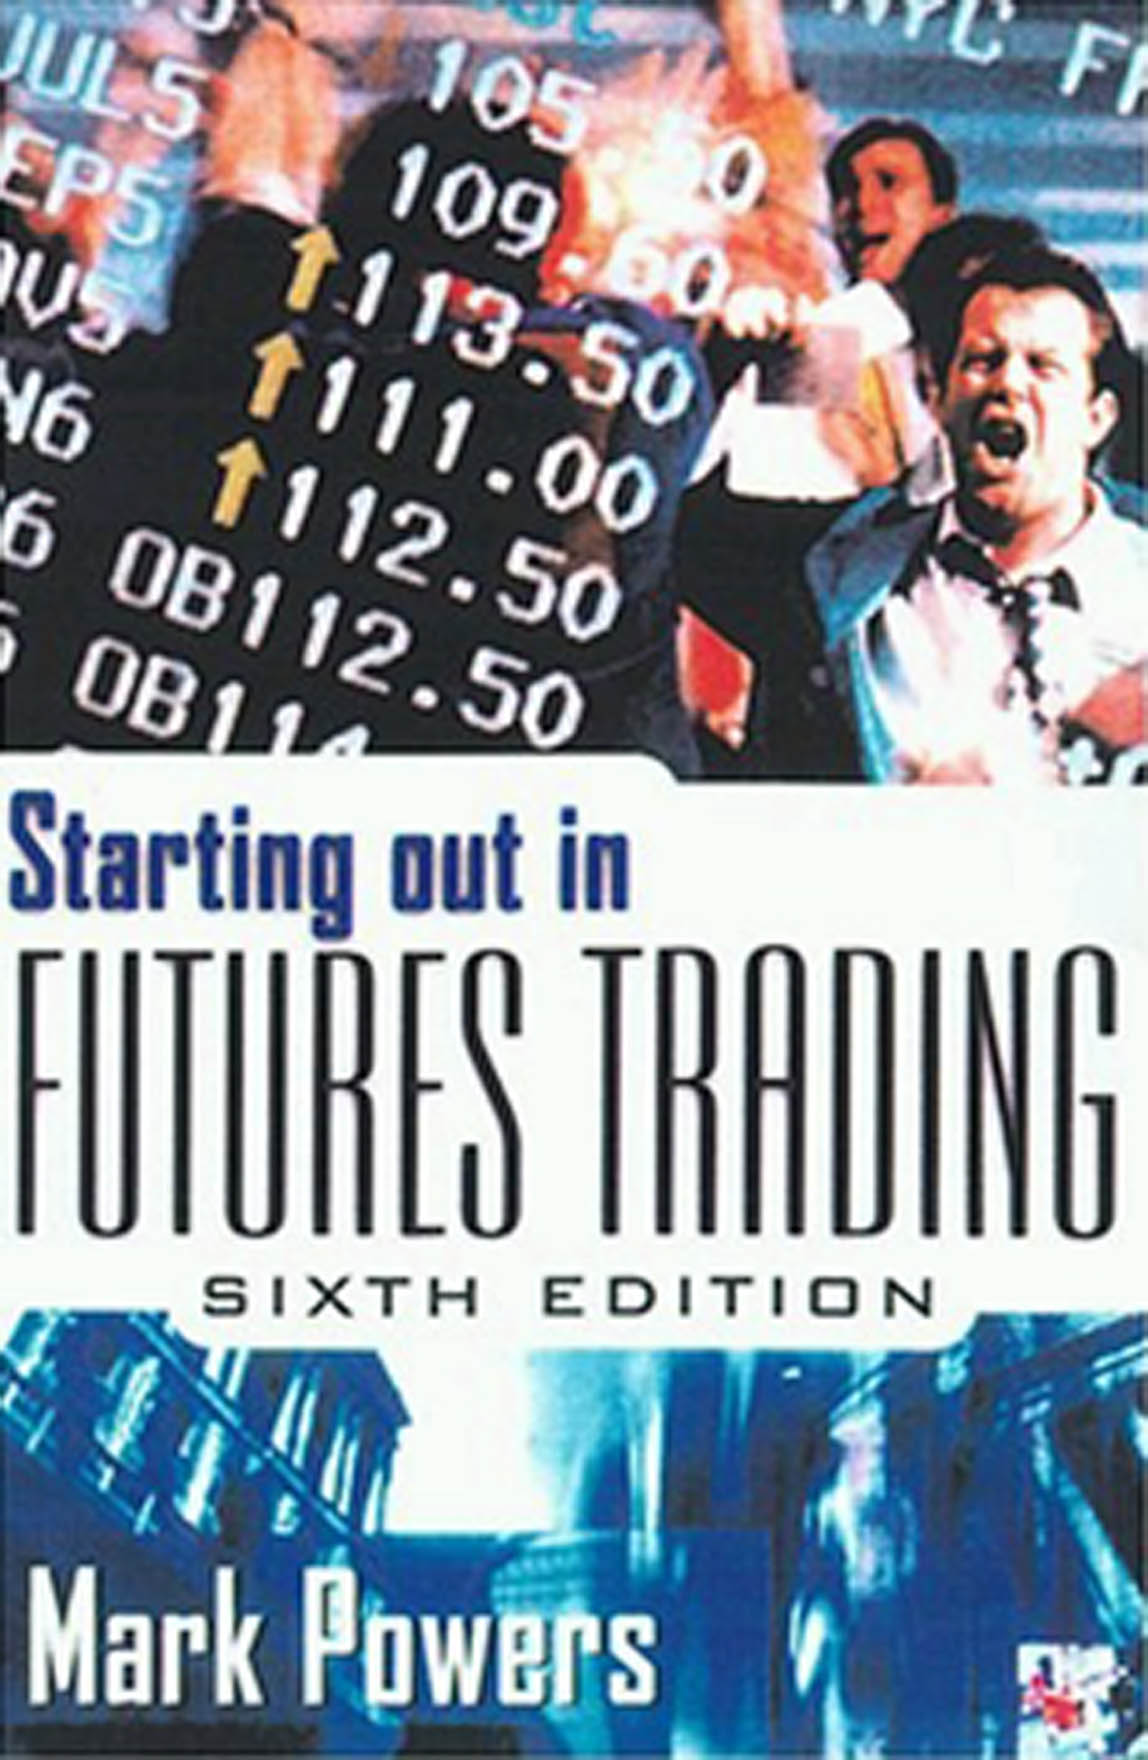 Download Ebook Starting Out in Futures Trading (6th ed.) by Mark Powers Pdf